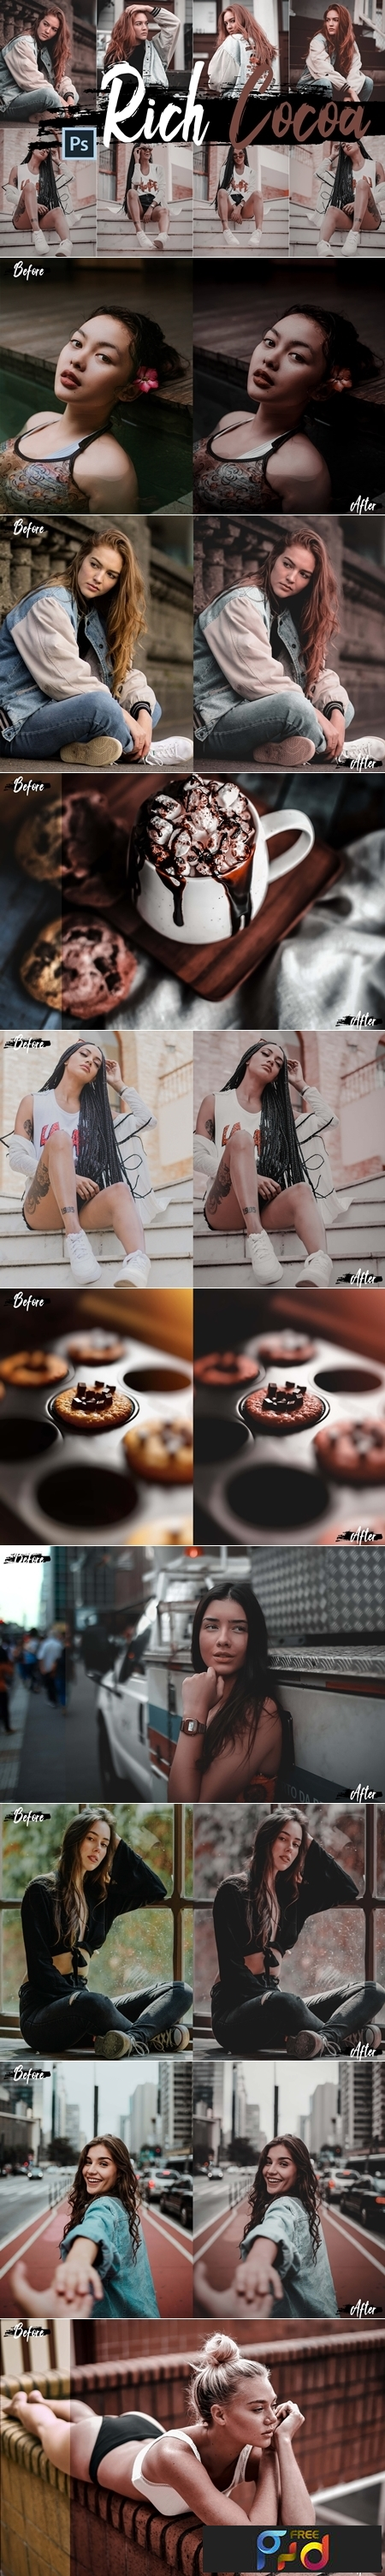 Neo Rich Cocoa Theme Color Grading photoshop actions 244078 1